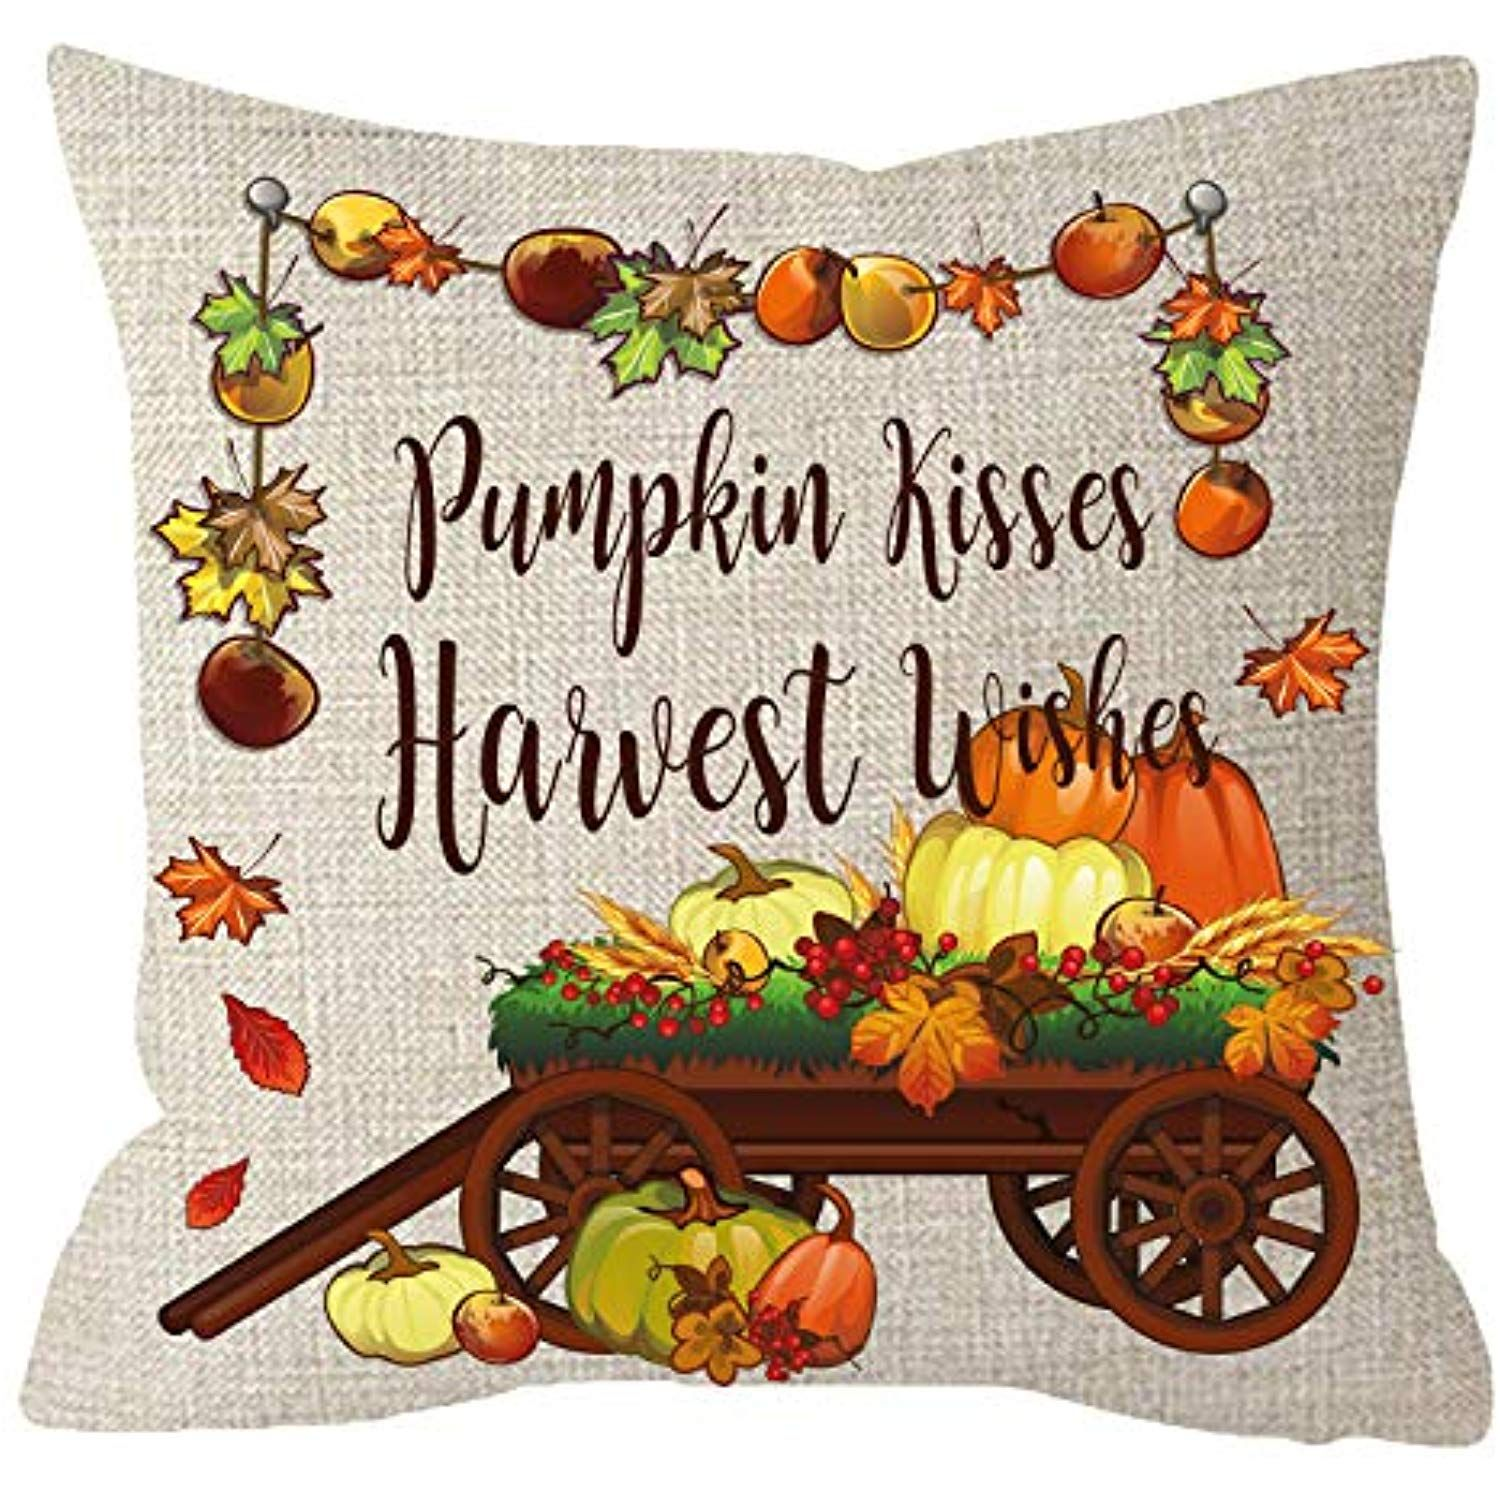 Niditw Nice Gift Golden Autumn Blessing Be Thankful Fall Leaves Pumpkins Kisses Harvest Wishes Apple Tr Linen Throw Pillow Square Pillowcase Throw Pillow Cases